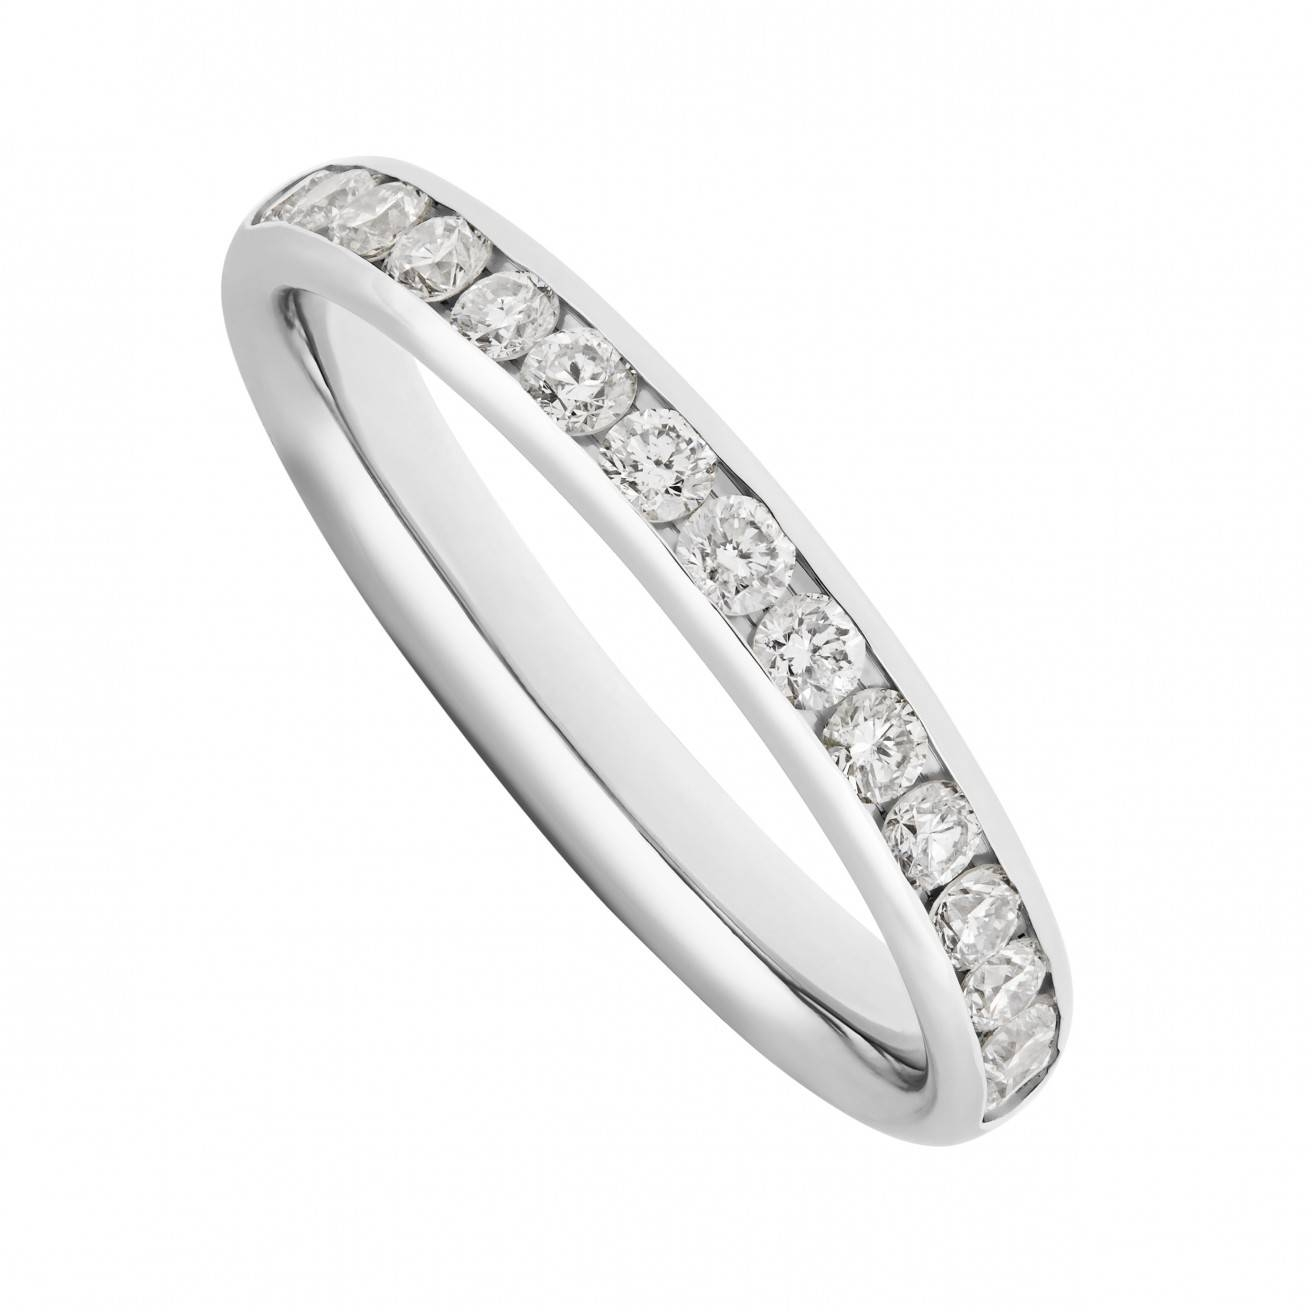 Buy Platinum Wedding Bands Online – Fraser Hart In Platinum Diamond Wedding Rings (Gallery 8 of 15)